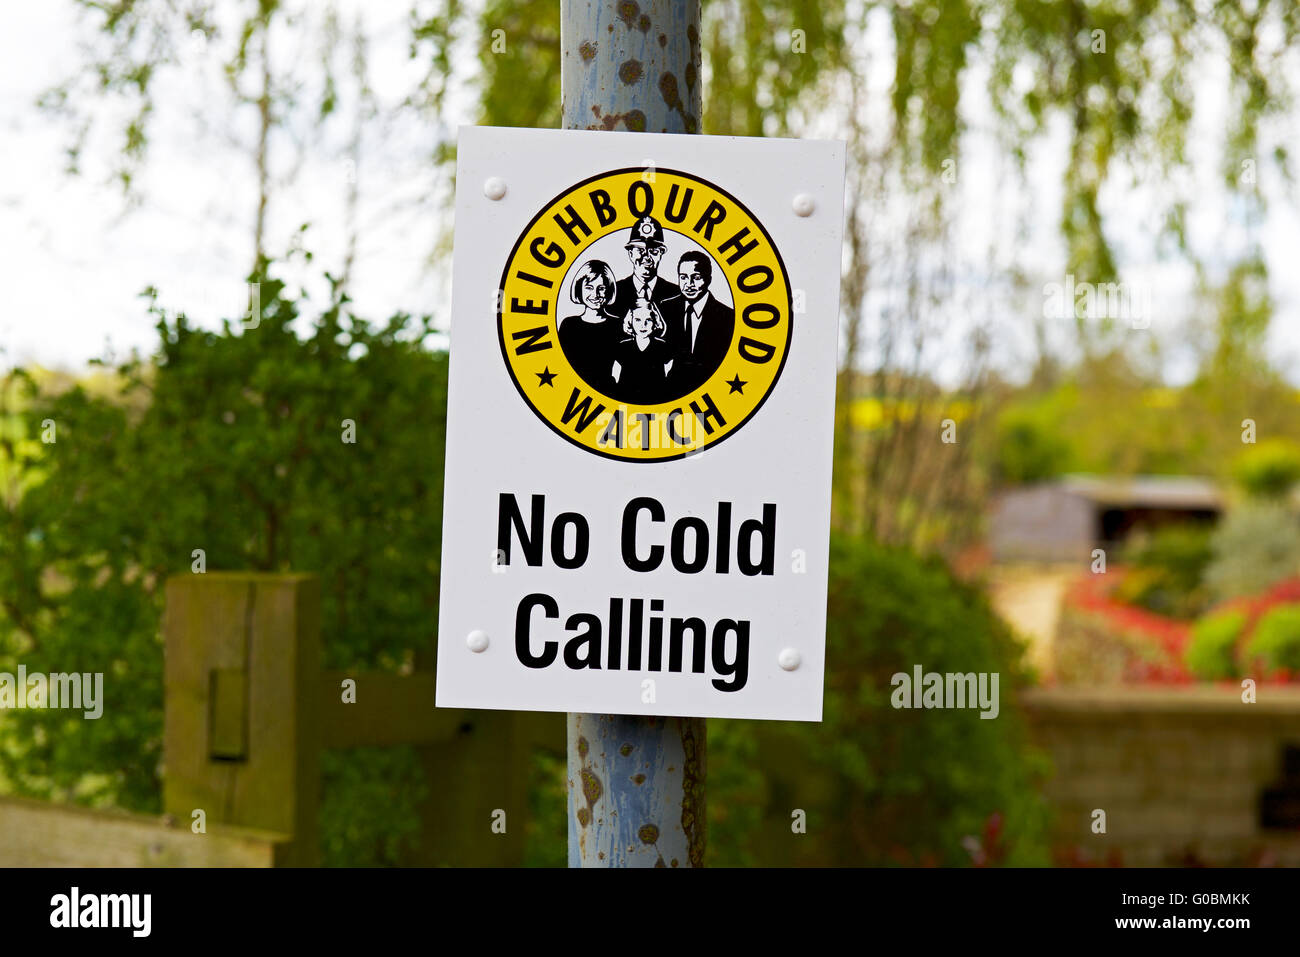 Neighbourhood Watch notice - no cold calling - in English village - Stock Image